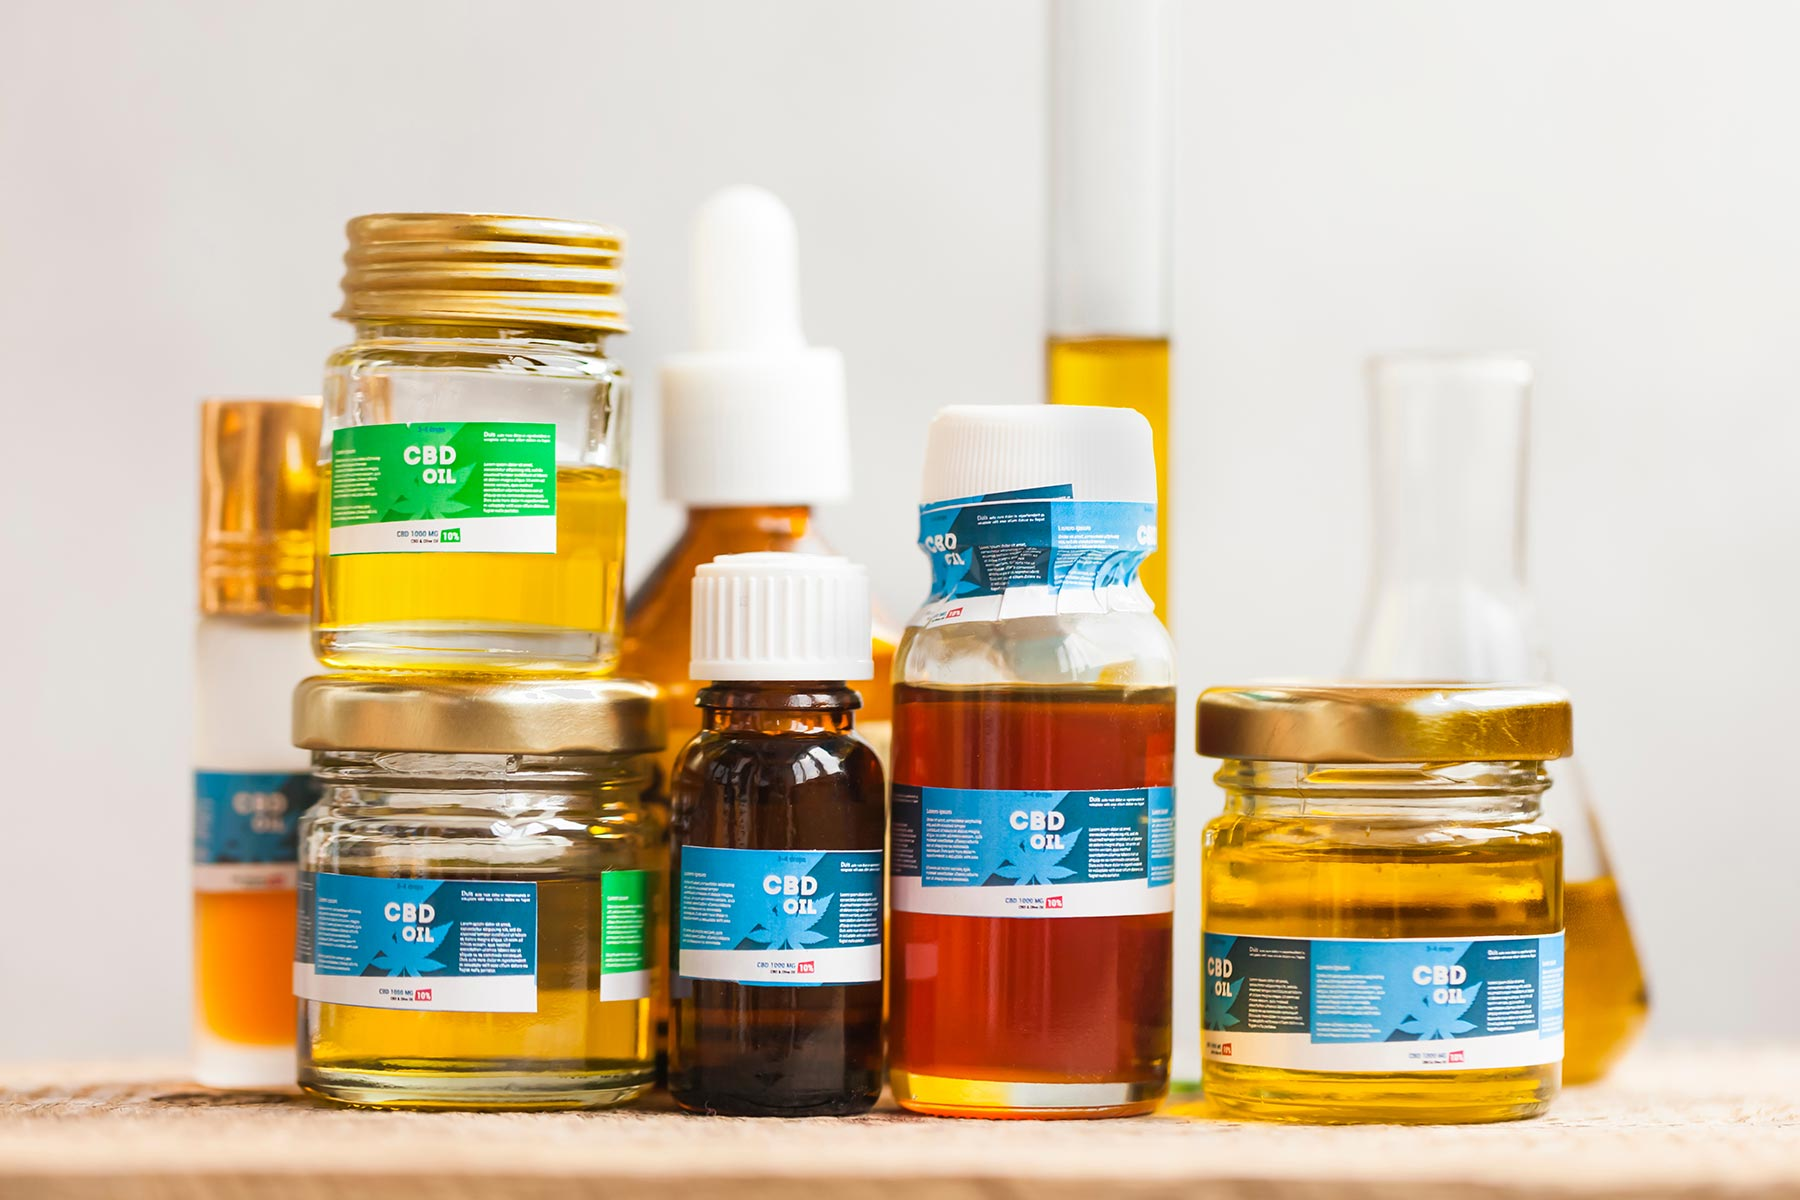 What You Need to Know about the FDA's Guidance on CBD